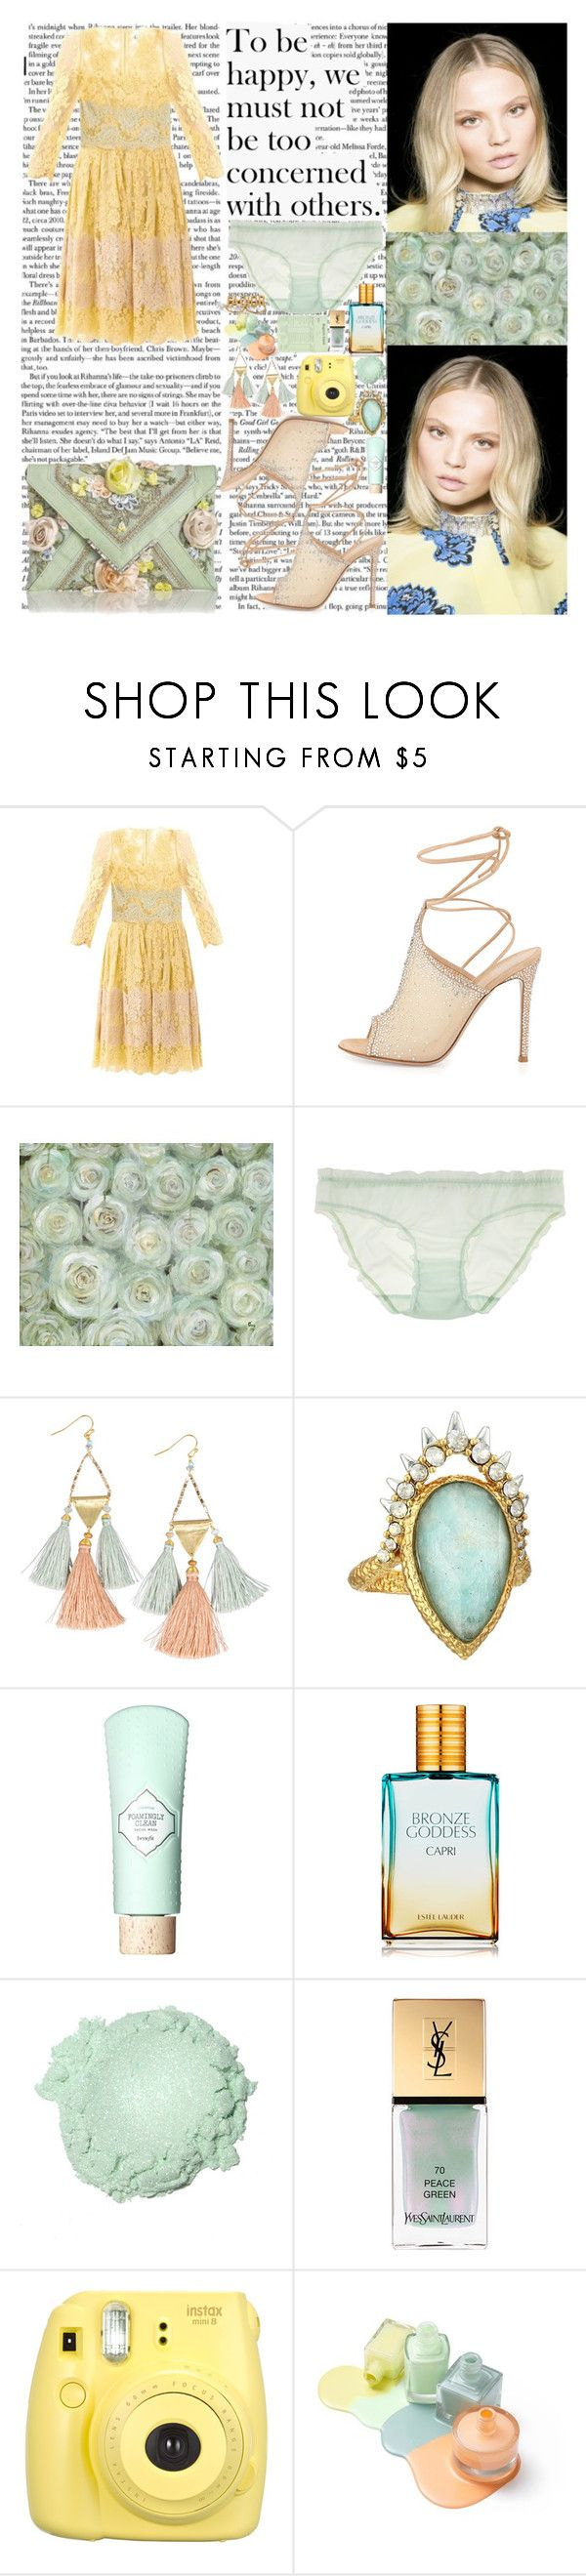 """""""Say my name Wear it out like a sweater that you love 'Cause I can't get enough when you Say my name Spill it out like a drink you should have skipped You're the one I wanna get when you Say my name Let it roll, let it roll off your tongue Let me know,"""" by labelsoflove ❤ liked on Polyvore featuring Dolce&Gabbana, Gianvito Rossi, Araks, NAKAMOL, Alexis Bittar, Benefit, Estée Lauder, Yves Saint Laurent and Fujifilm"""